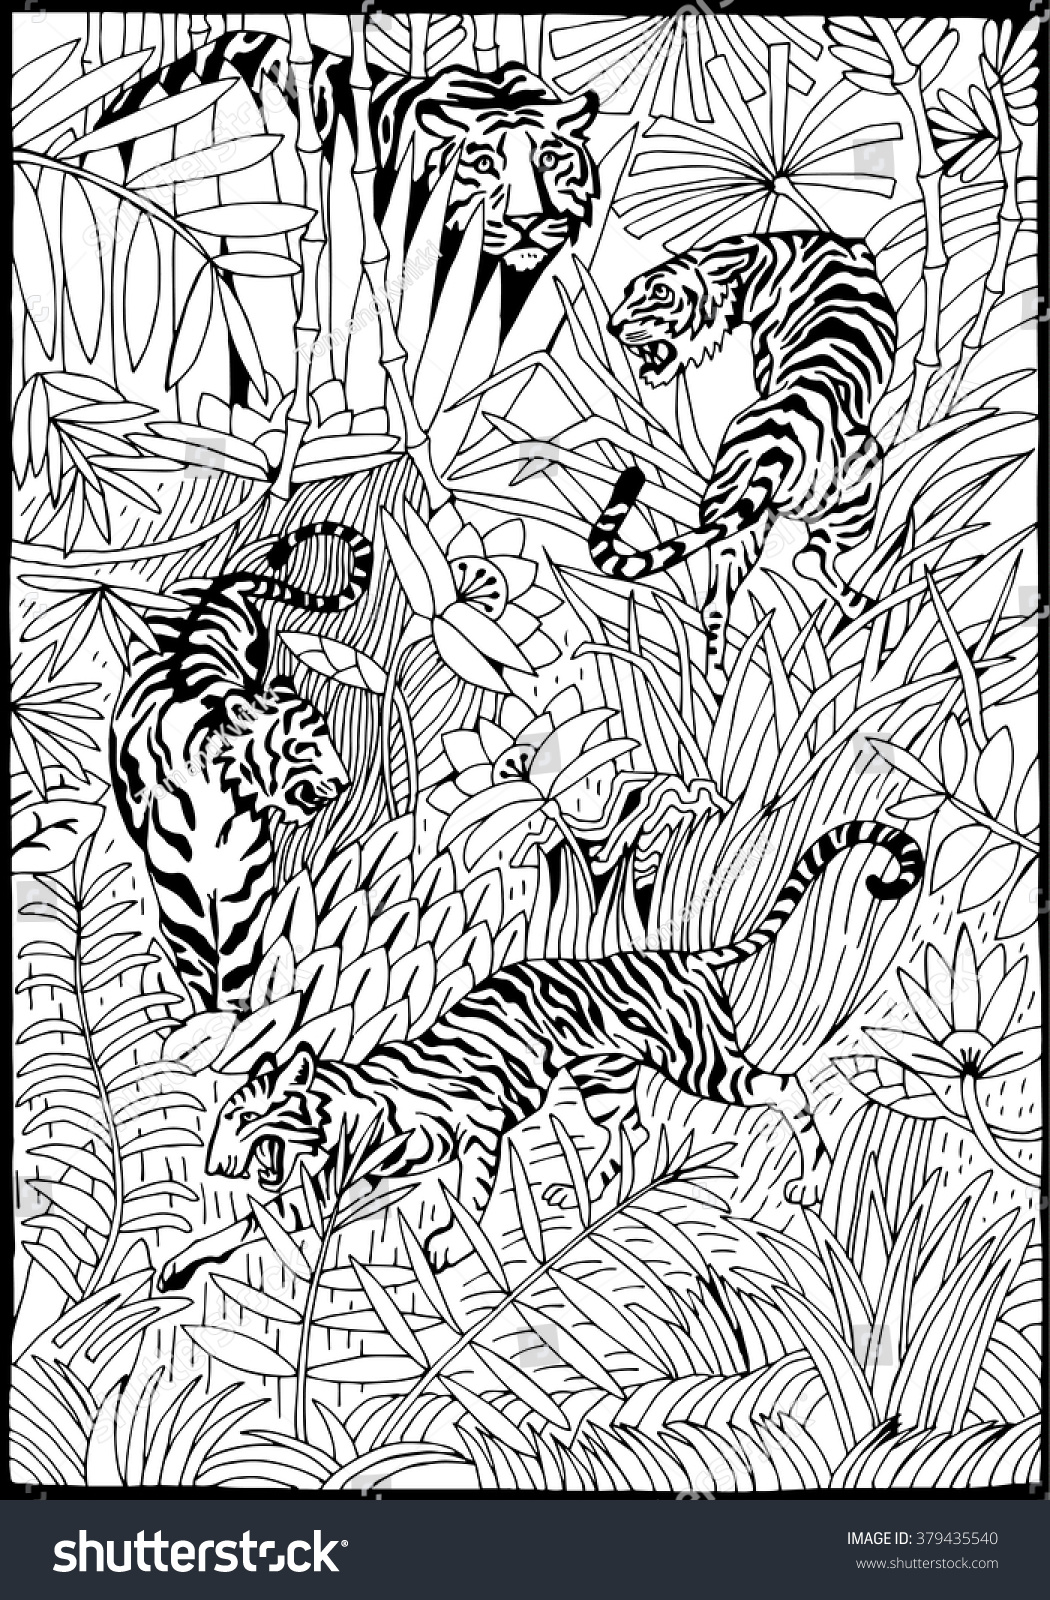 Tiger Jungle Coloring Page Stock Vector 379435540 - Shutterstock